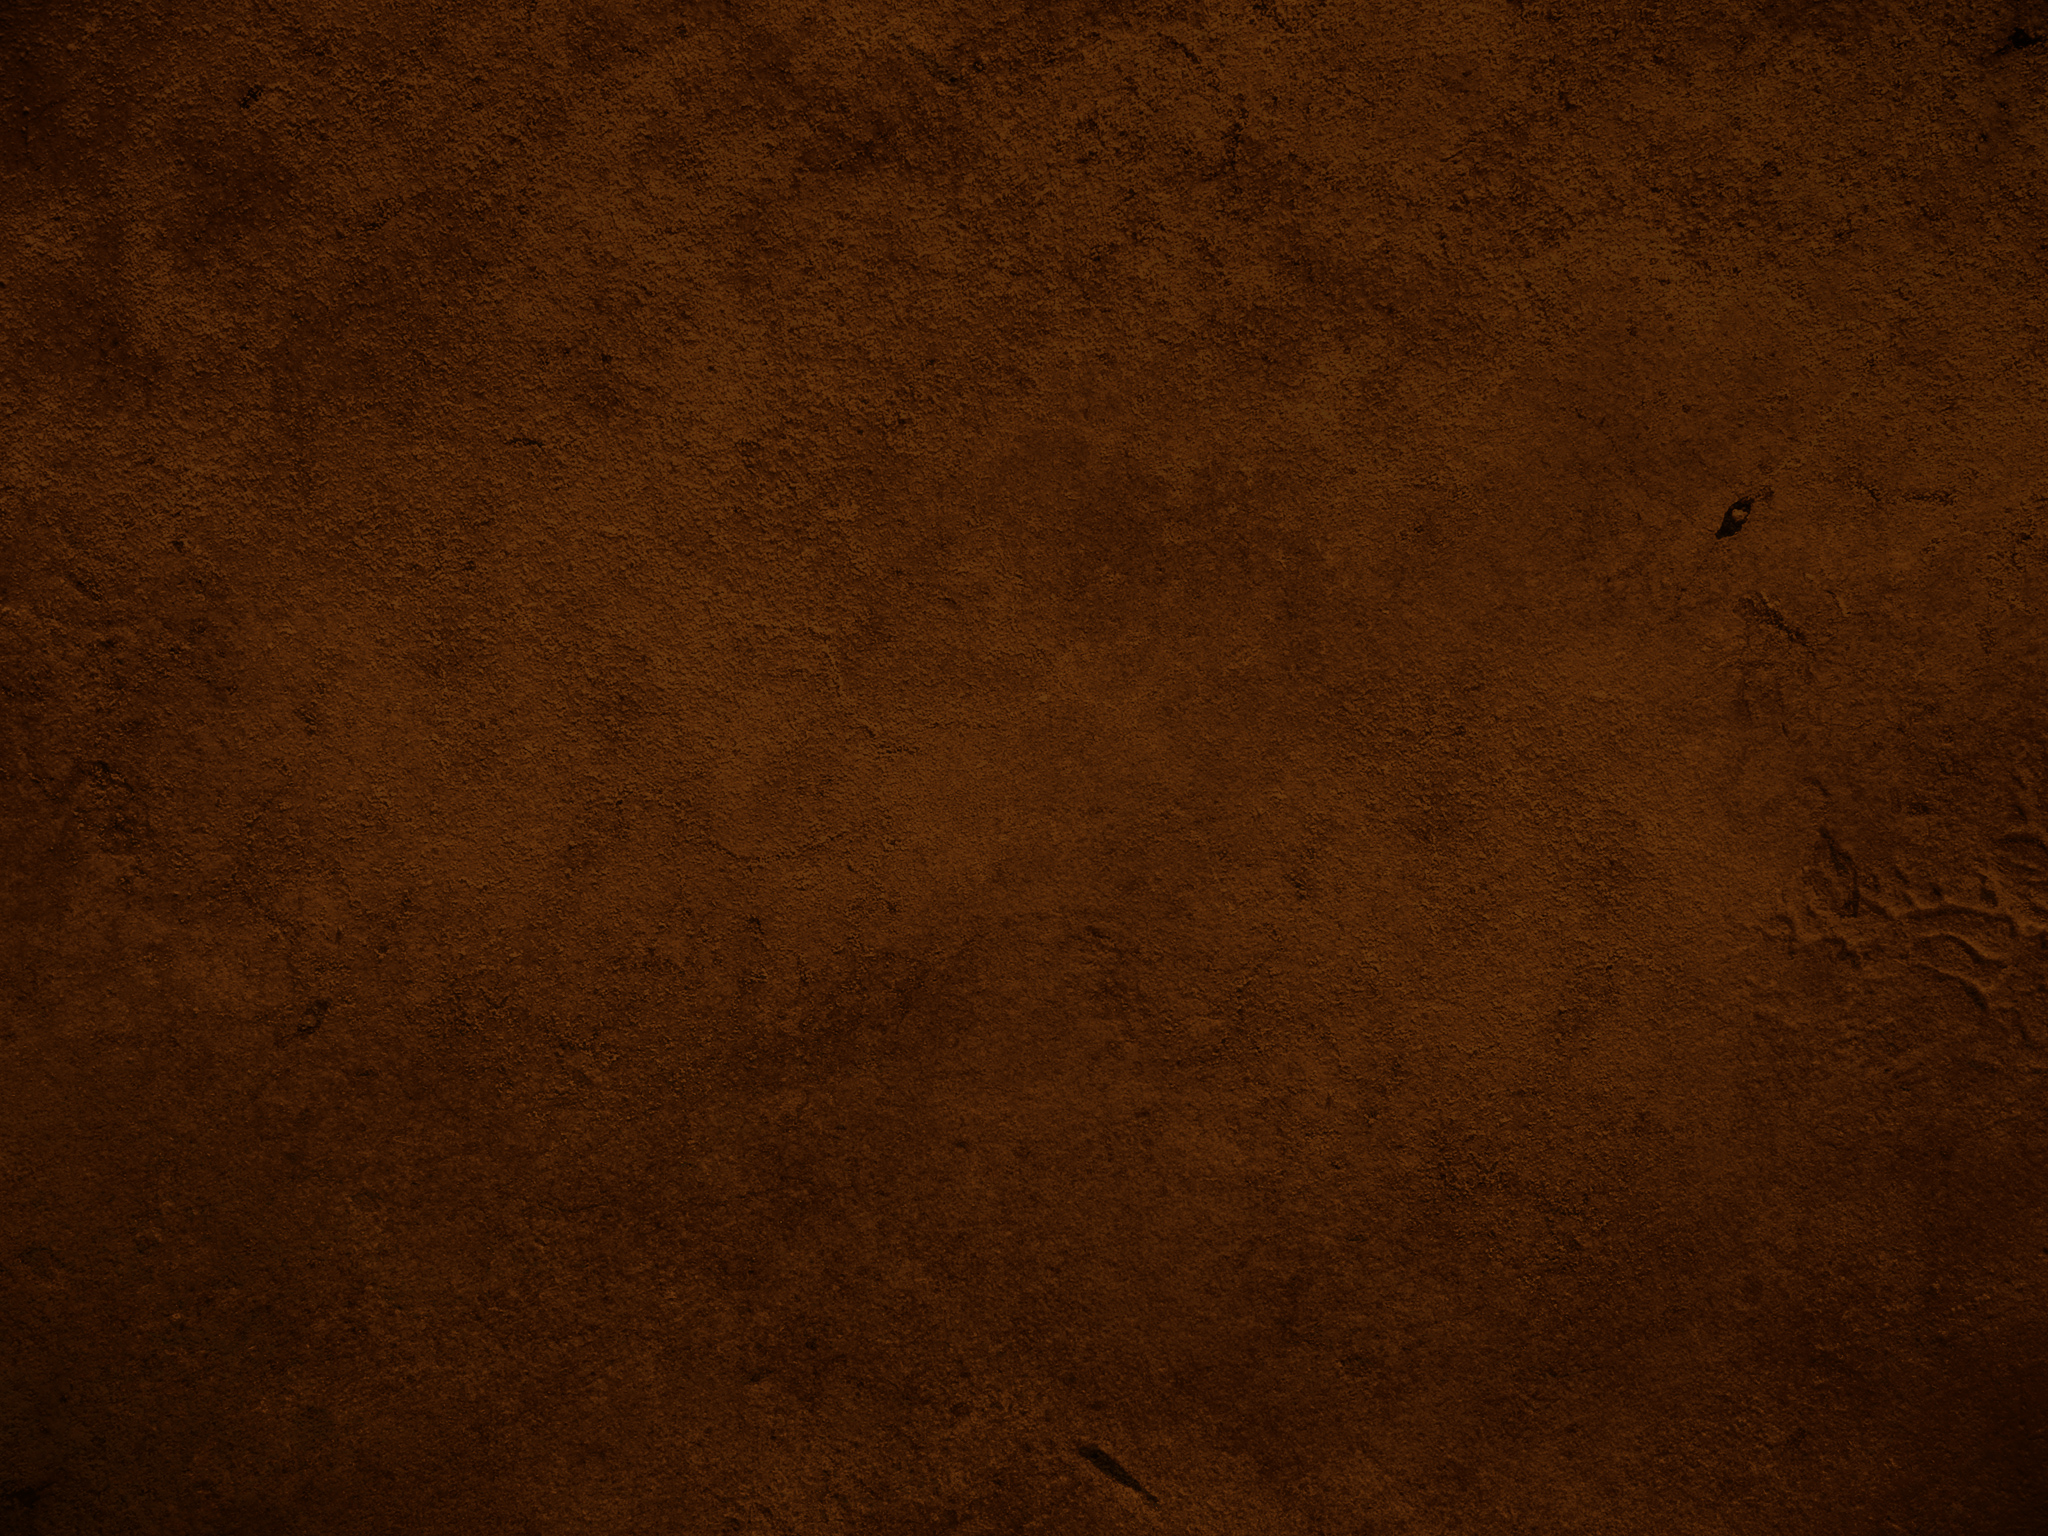 Related searches for Red Brown Texture Background 2048x1536